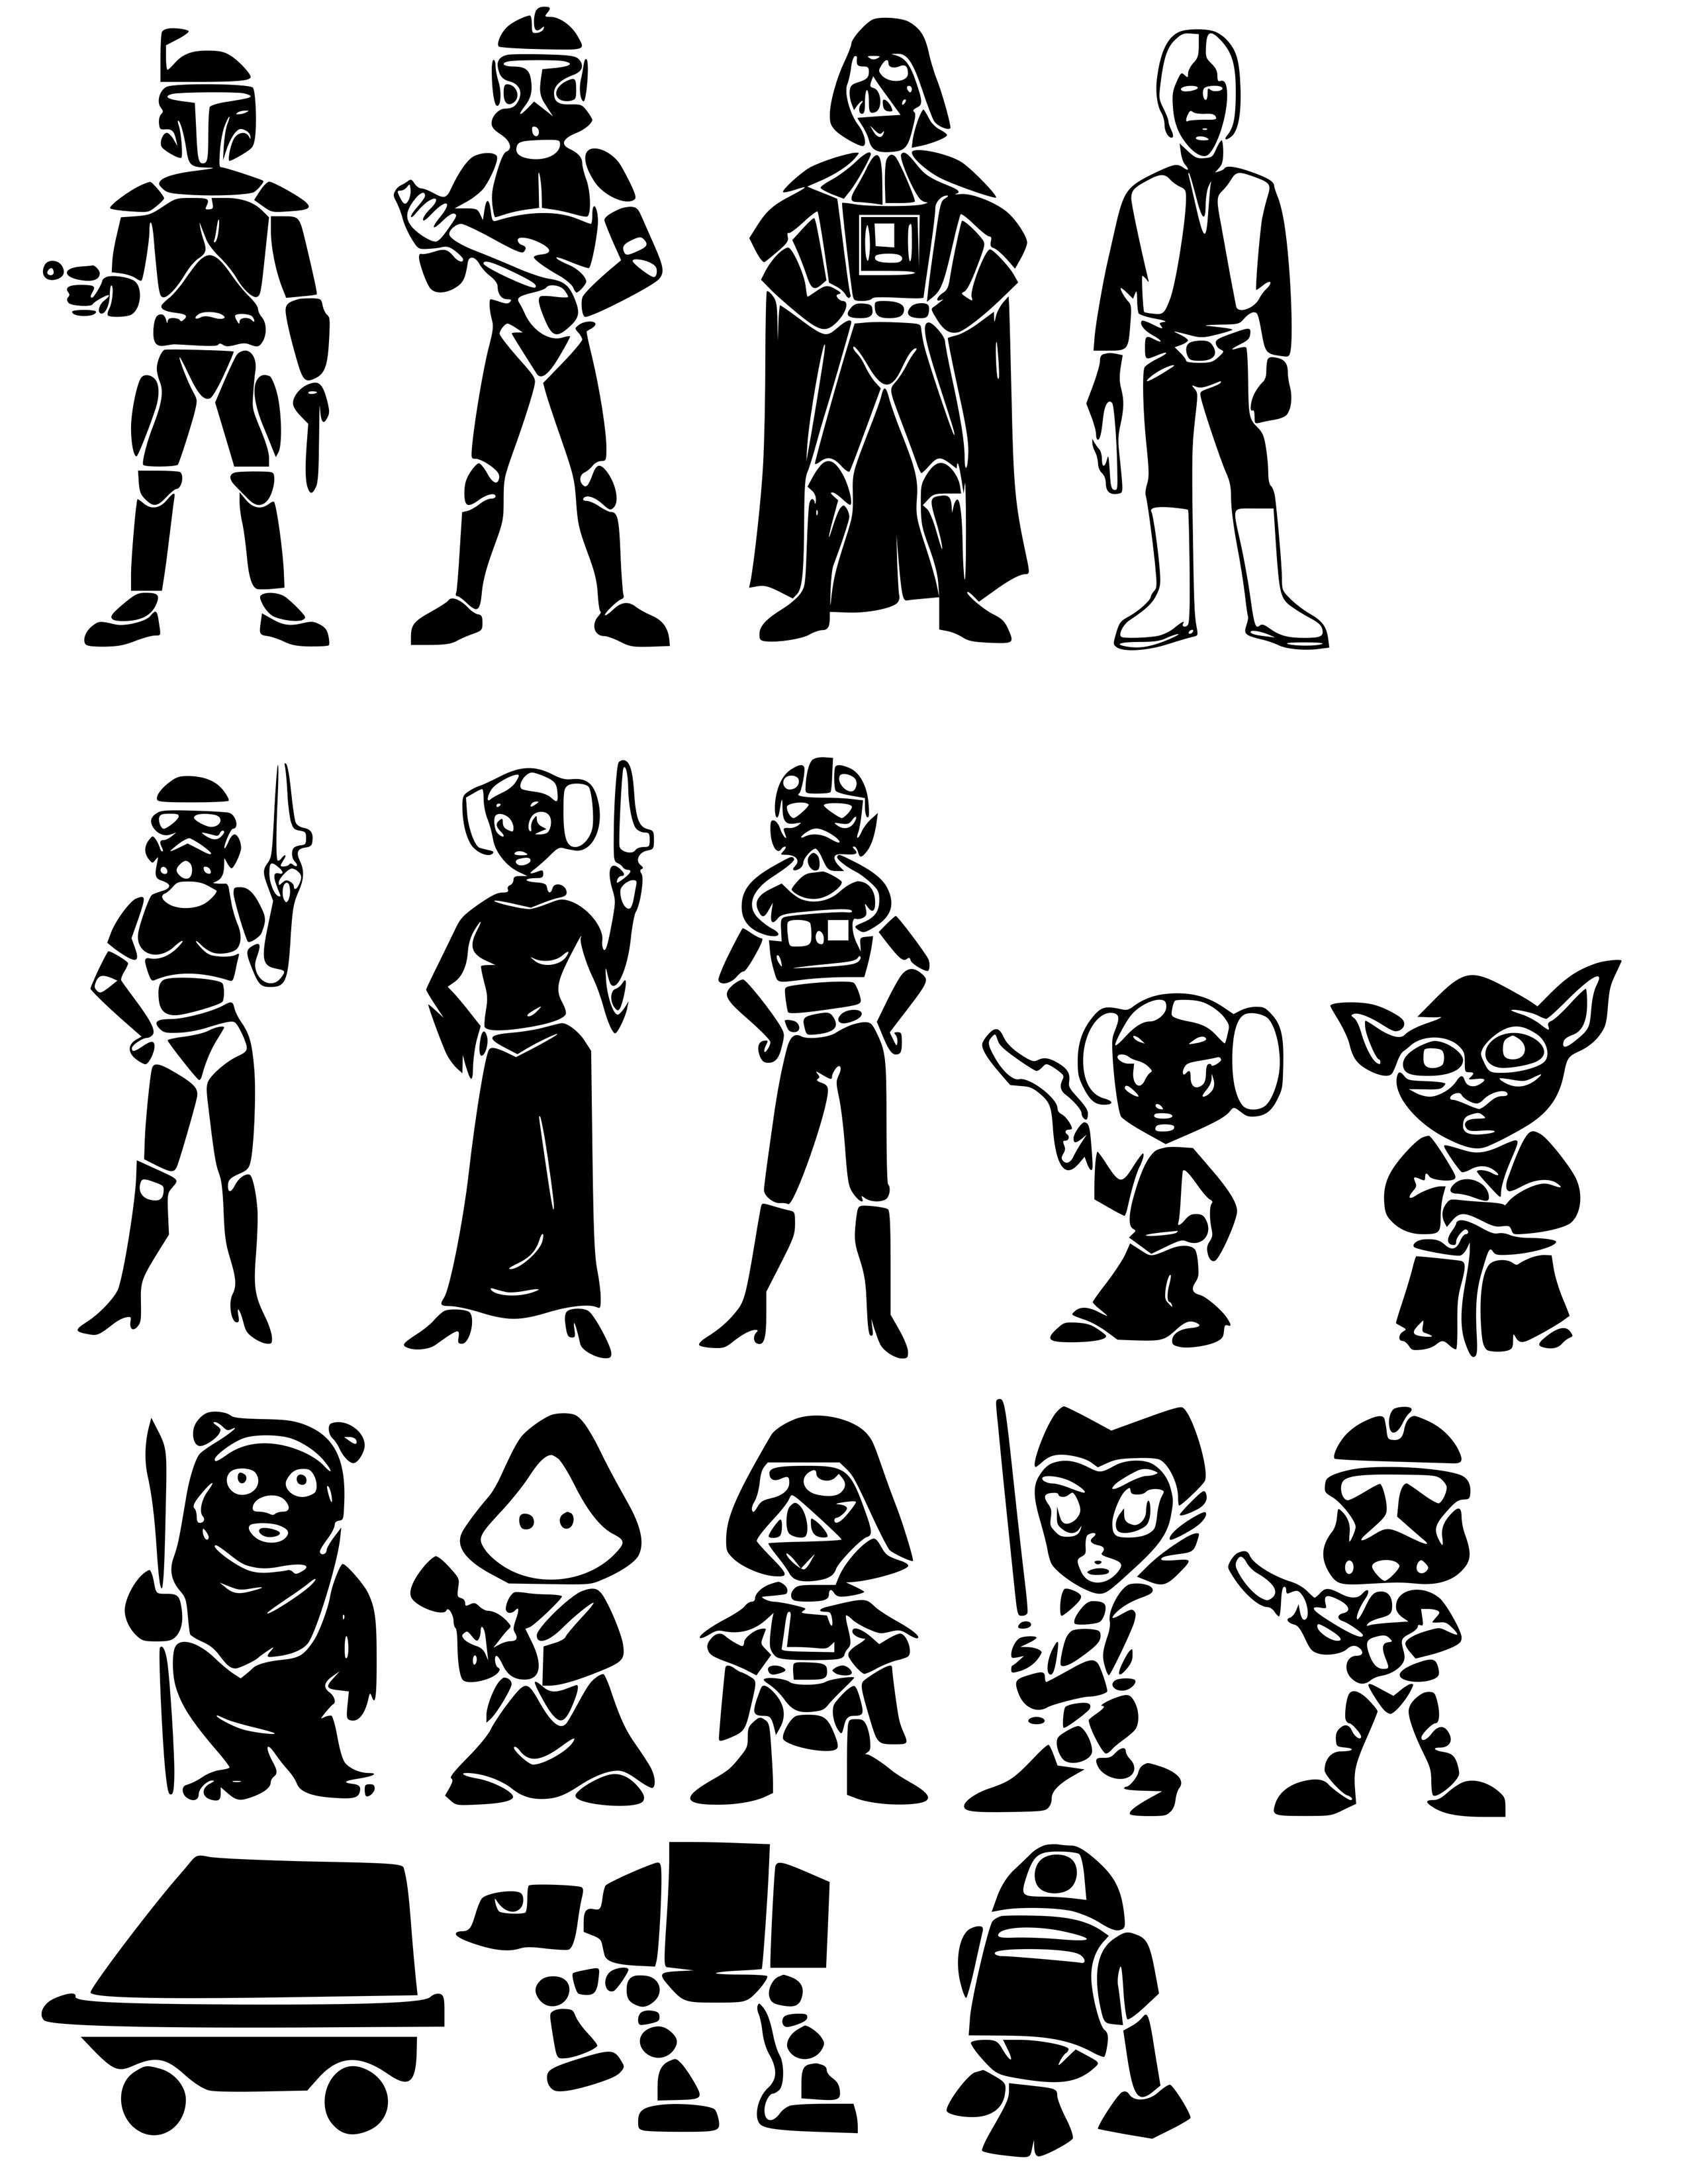 Star Wars Family Svg Files 99 For 17 Characters What A Deal Star Wars Silhouette Silhouette Images Star Wars